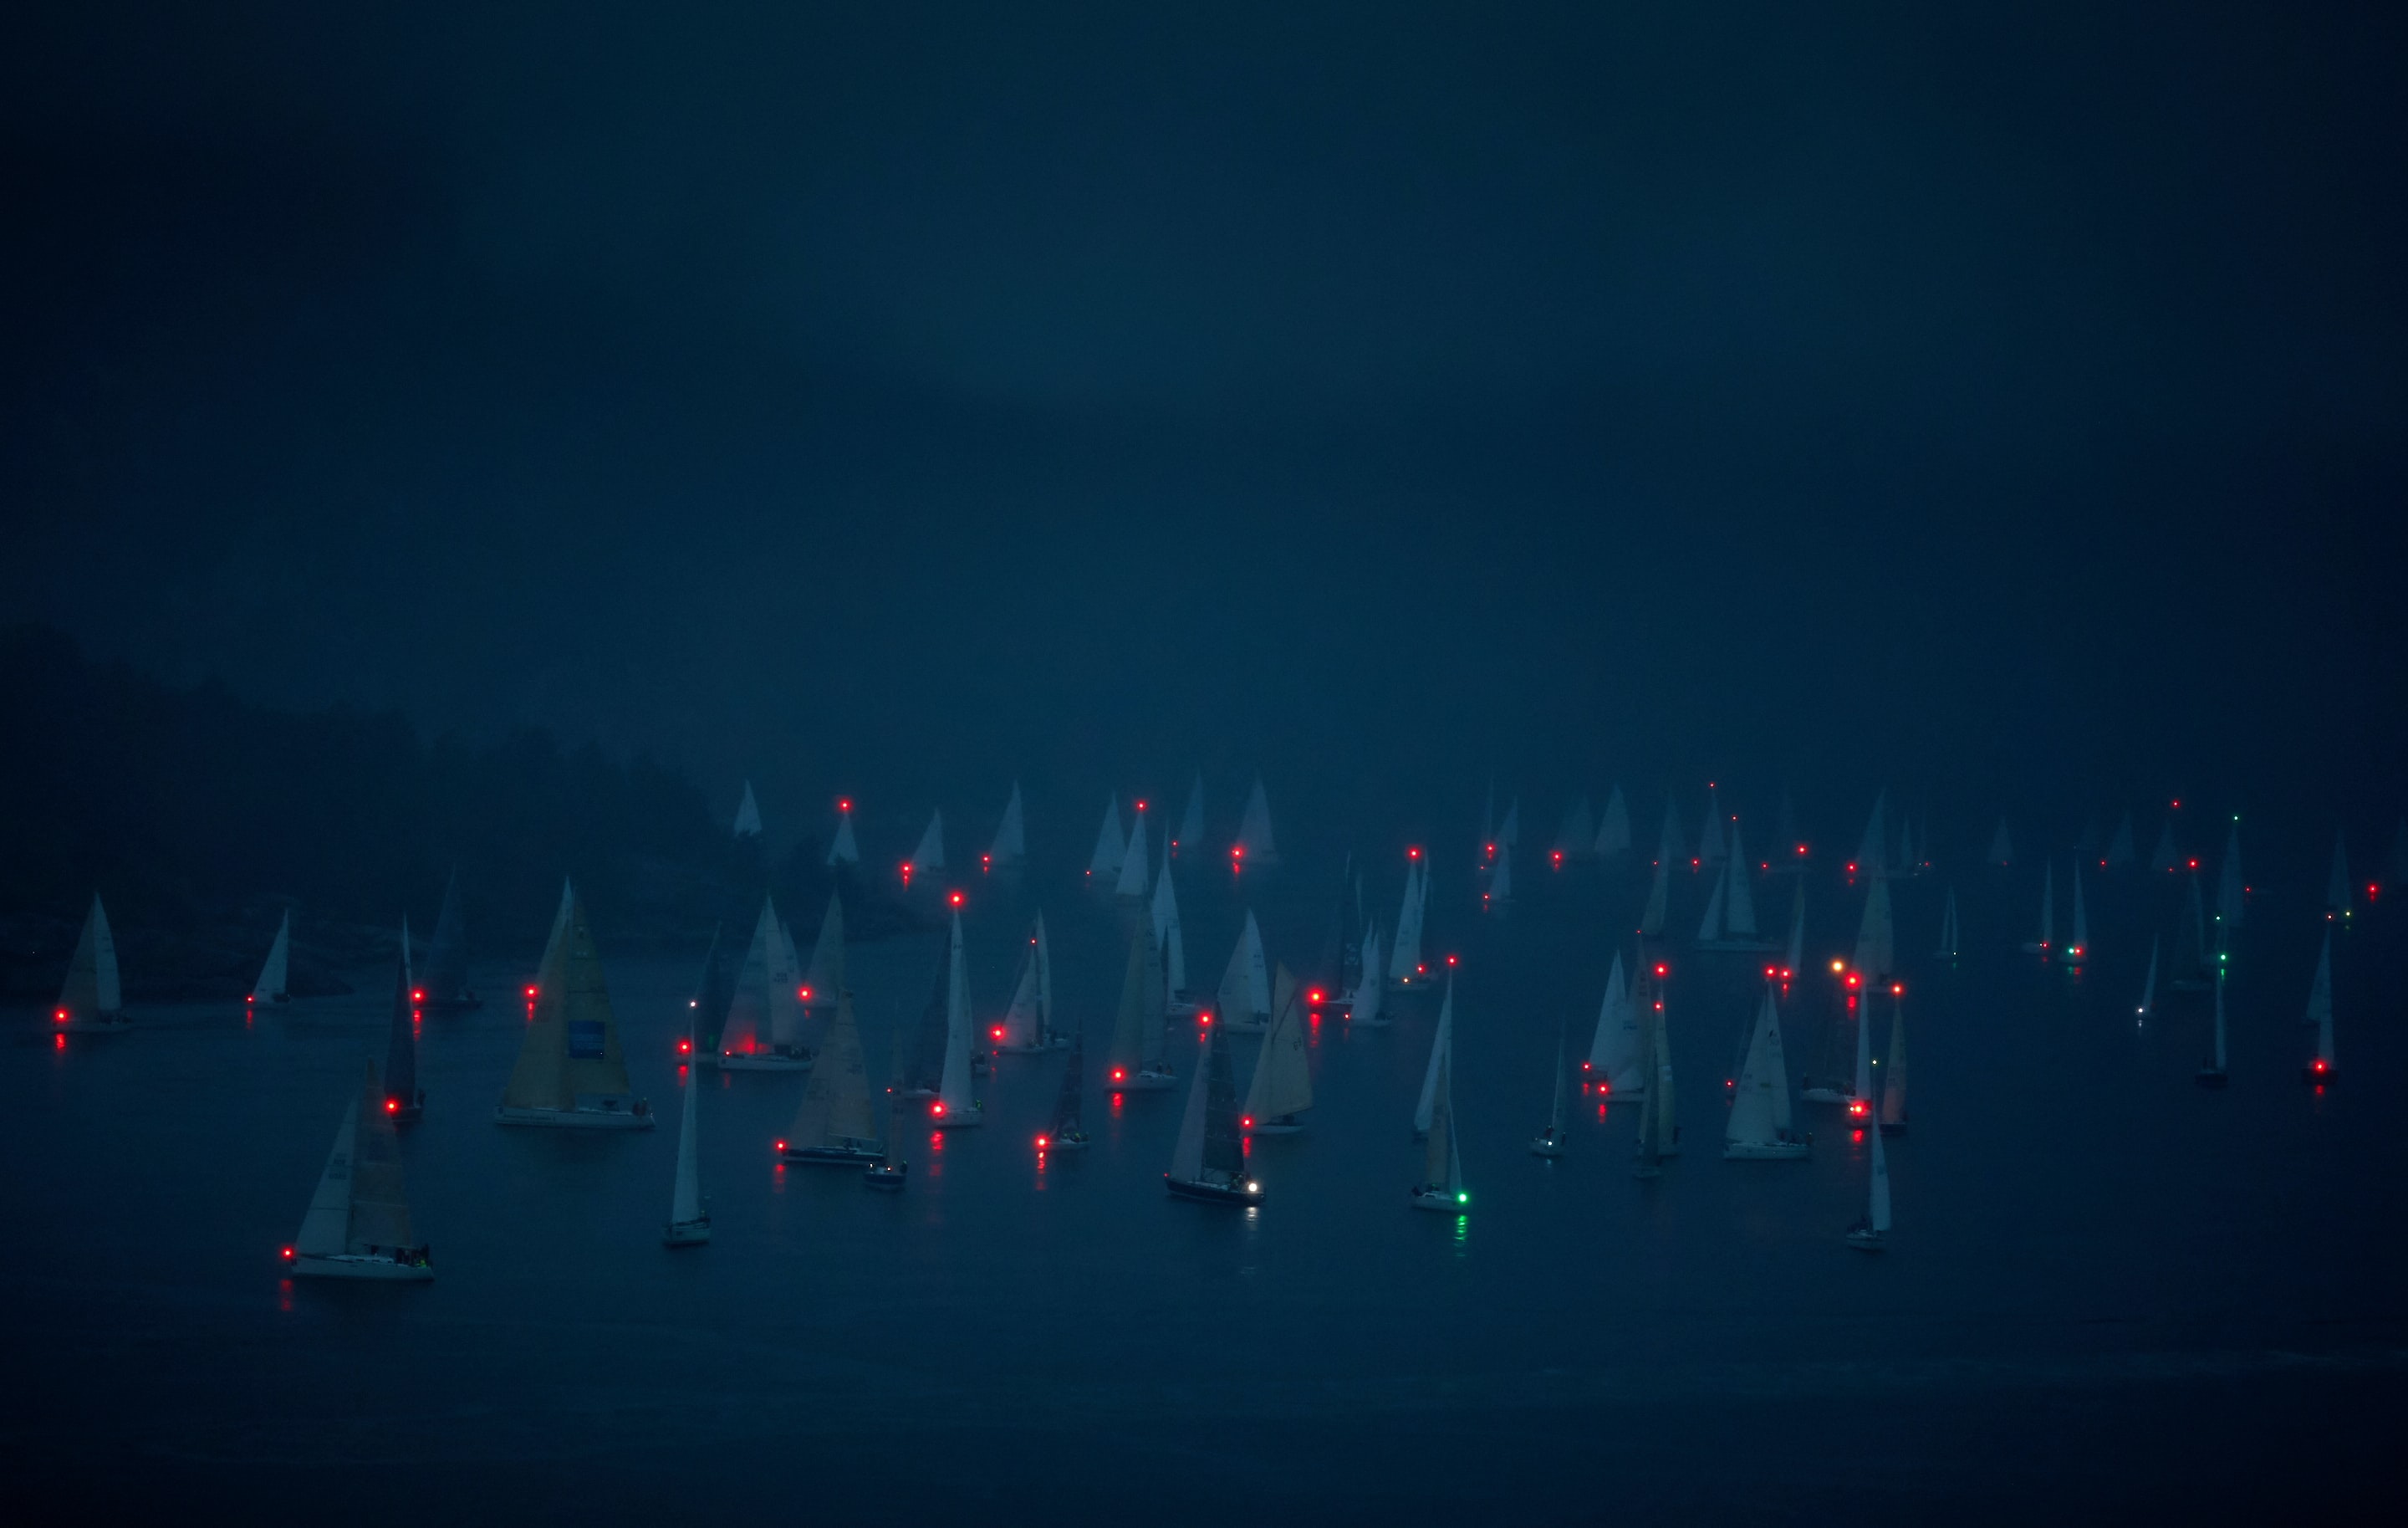 boats on body of water during night